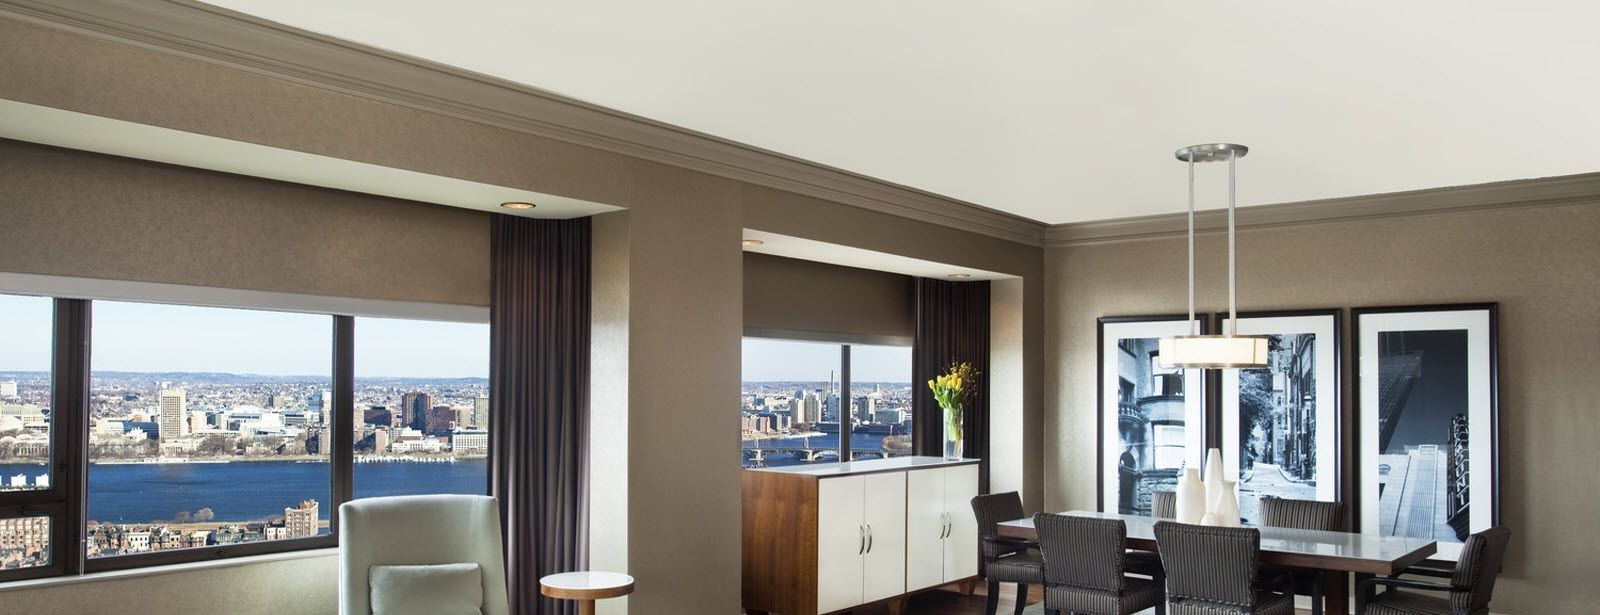 The Westin Copley Place Boston imperial suite view